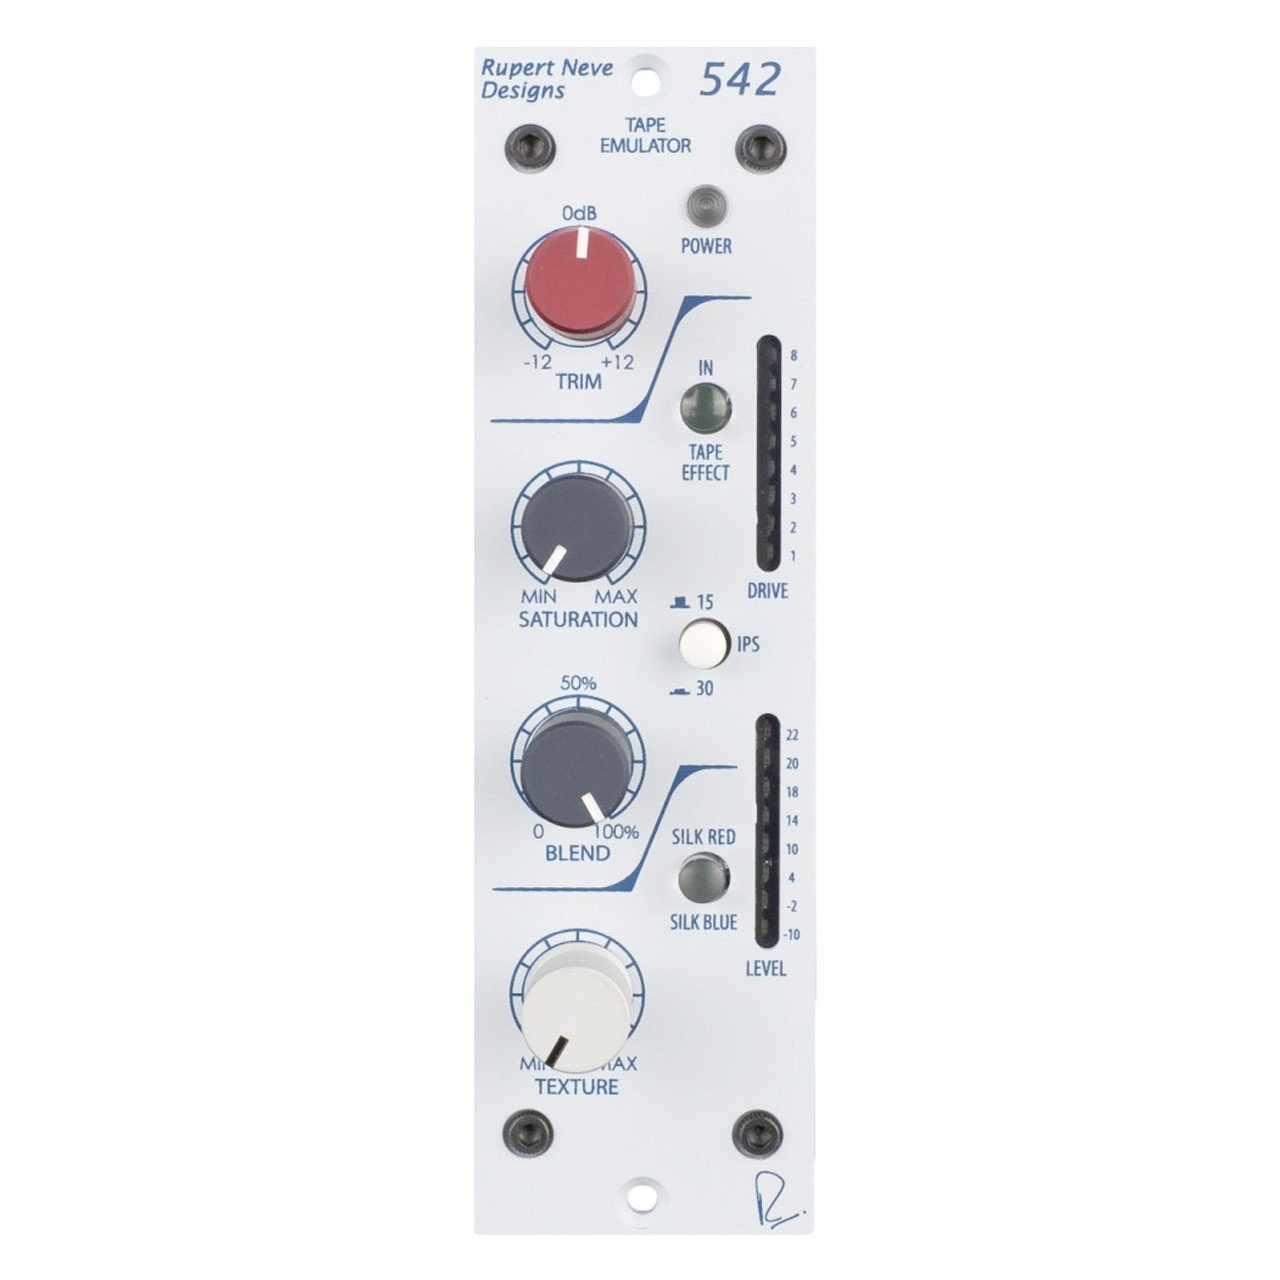 Rupert Neve Designs 542 - 500 Series Tape Emulator